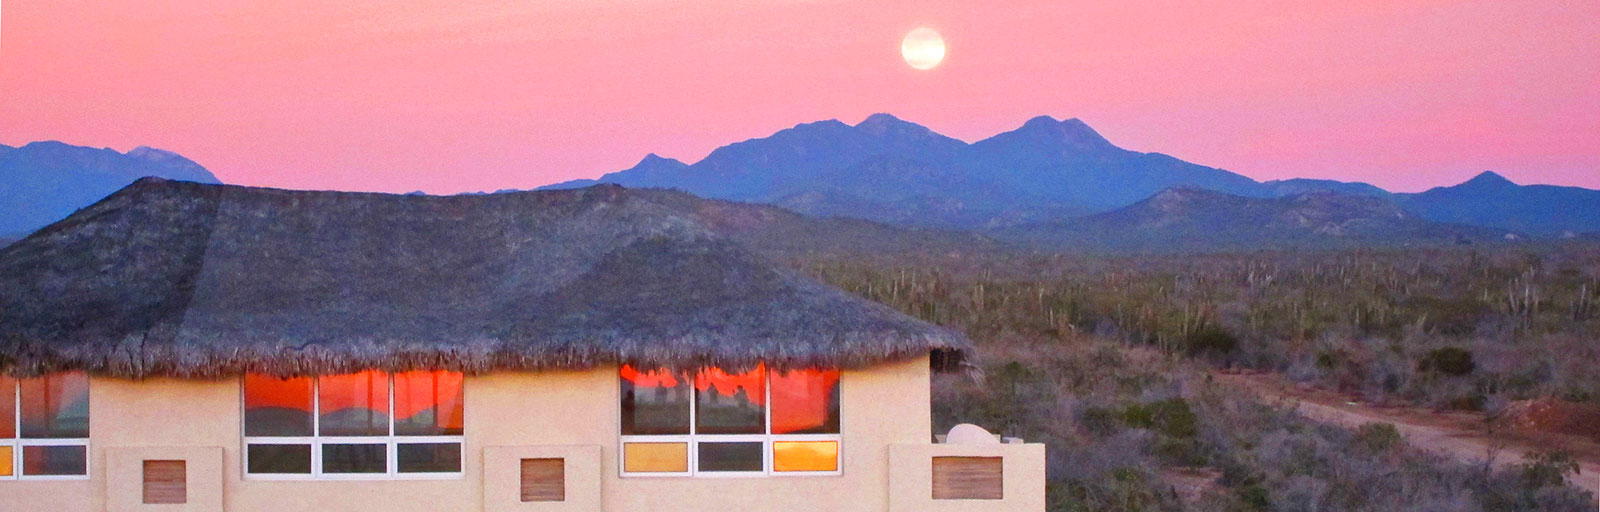 Best Yoga Retreats in Mexico: Full Moon Rises over Yoga Studio at Sunset